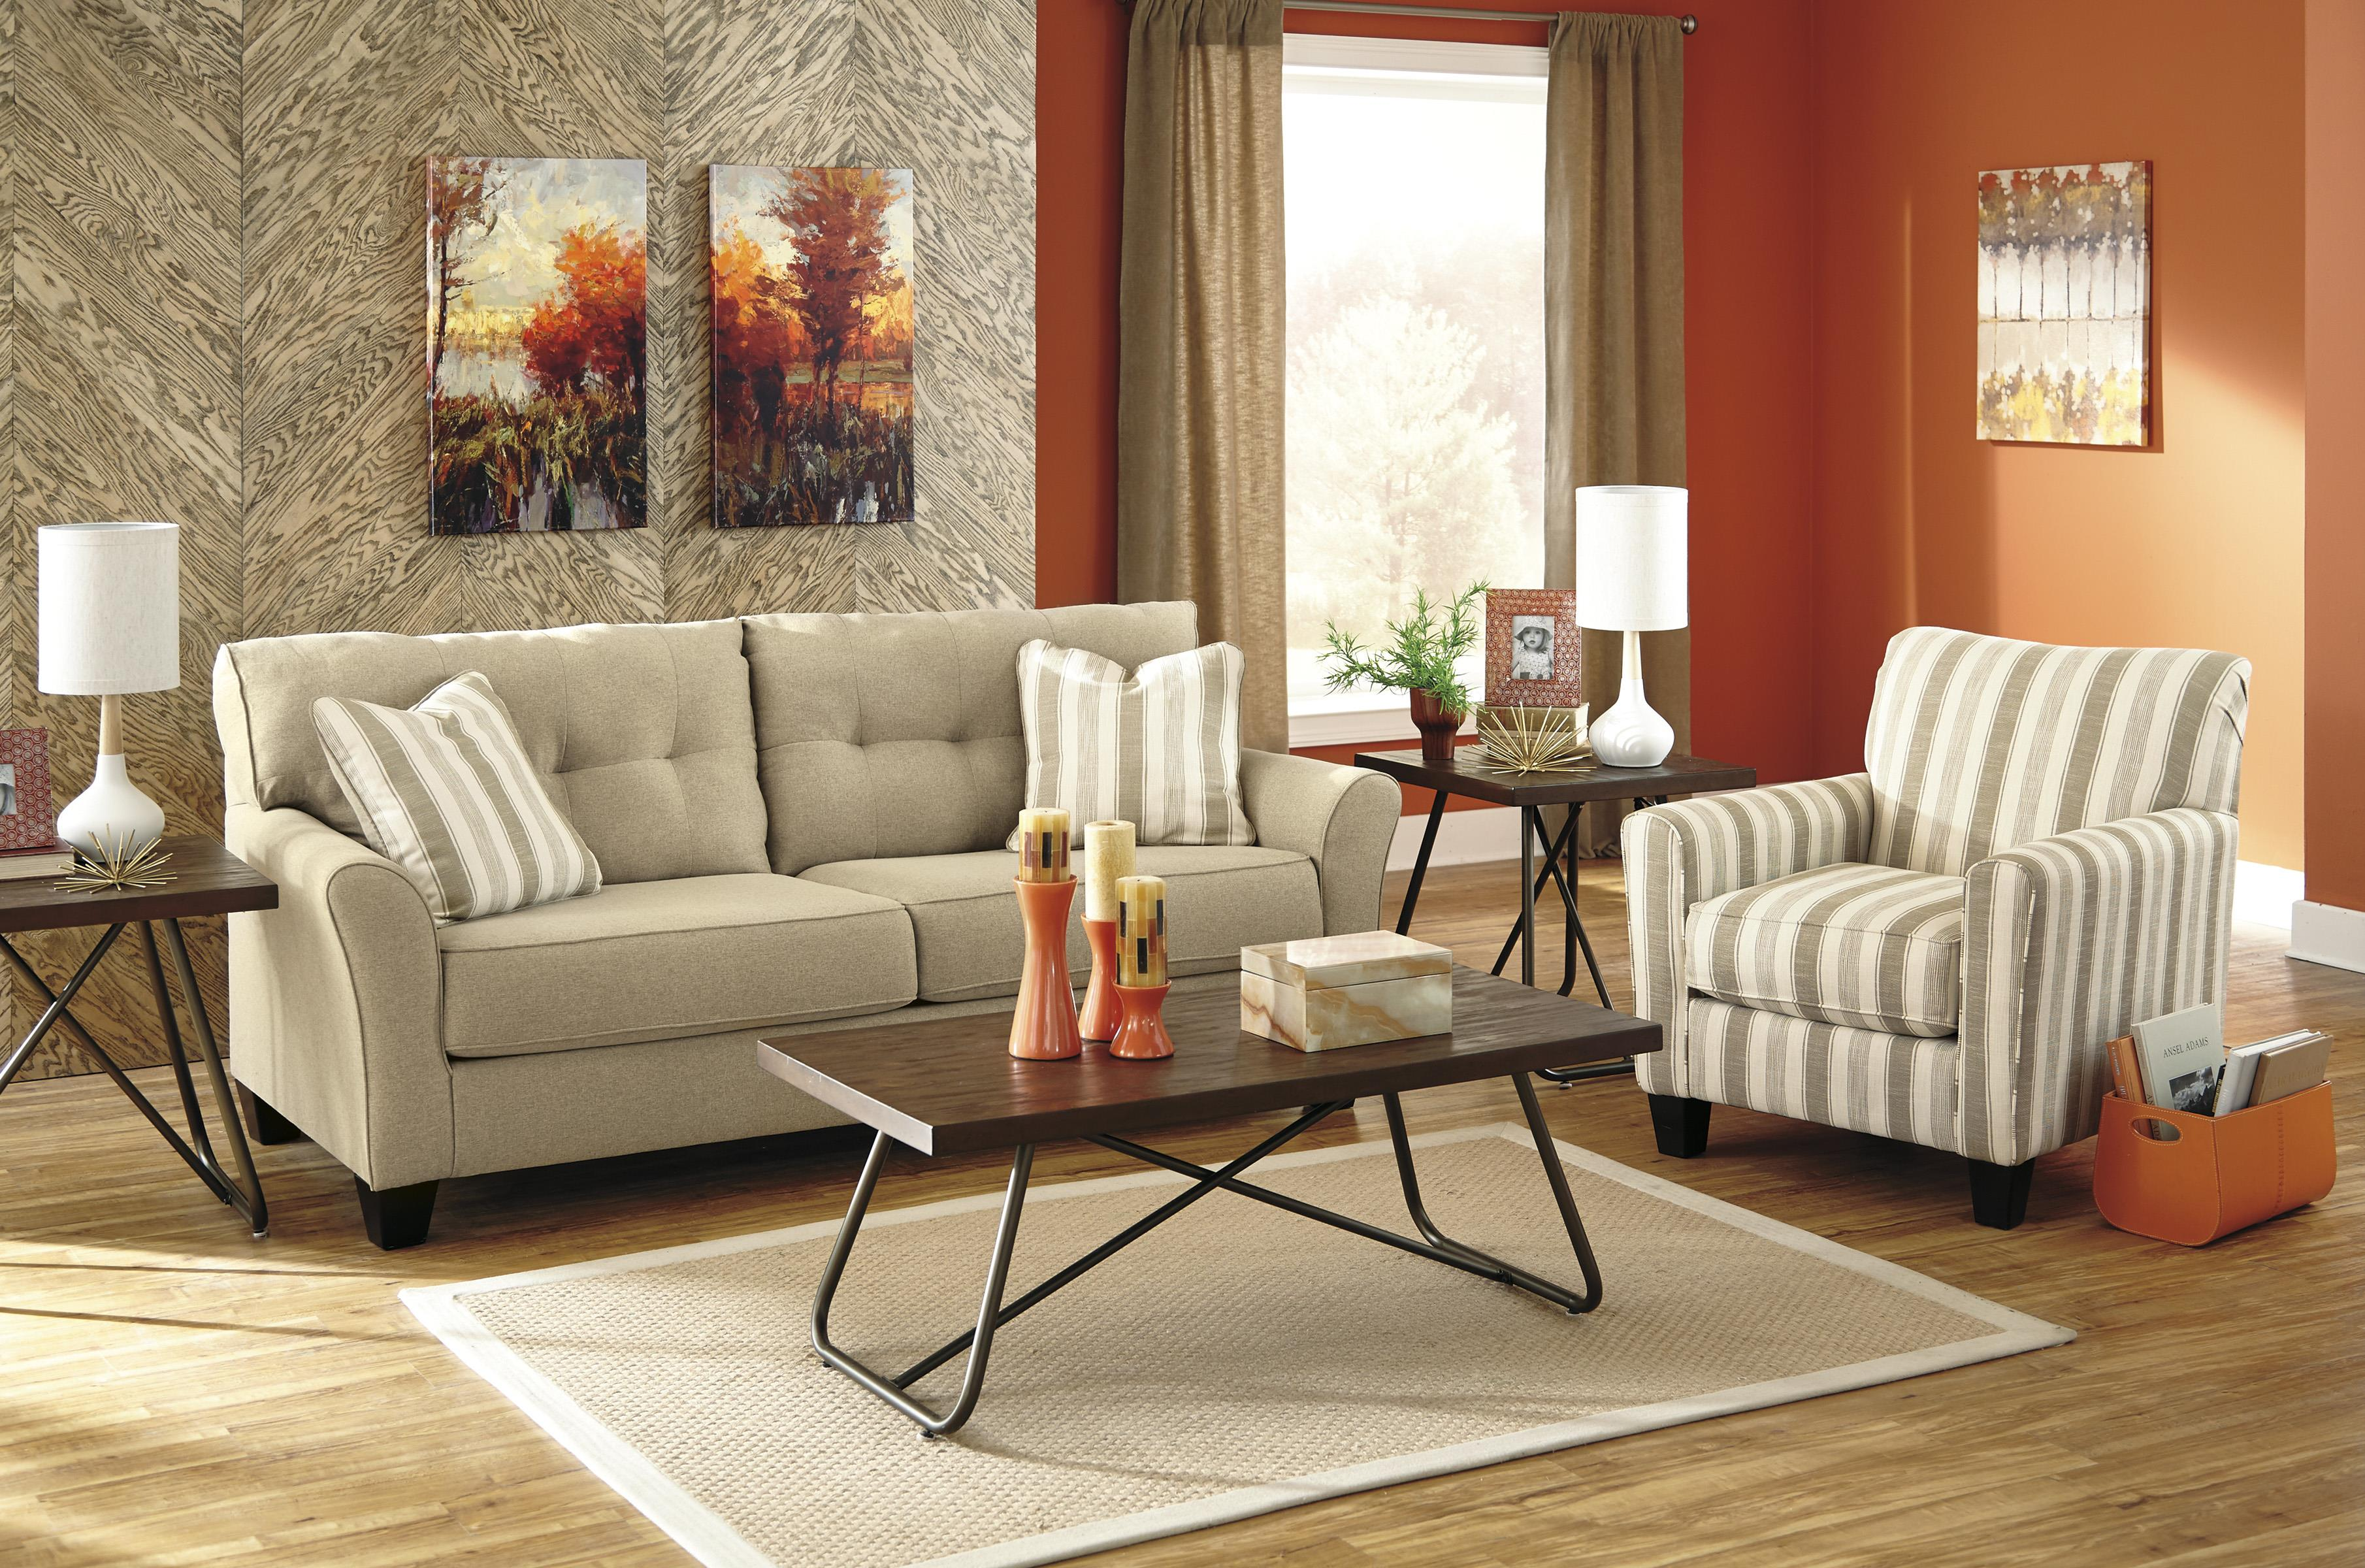 Ashley/Benchcraft Laryn Stationary Living Room Group - Item Number: 51902 Living Room Group 2